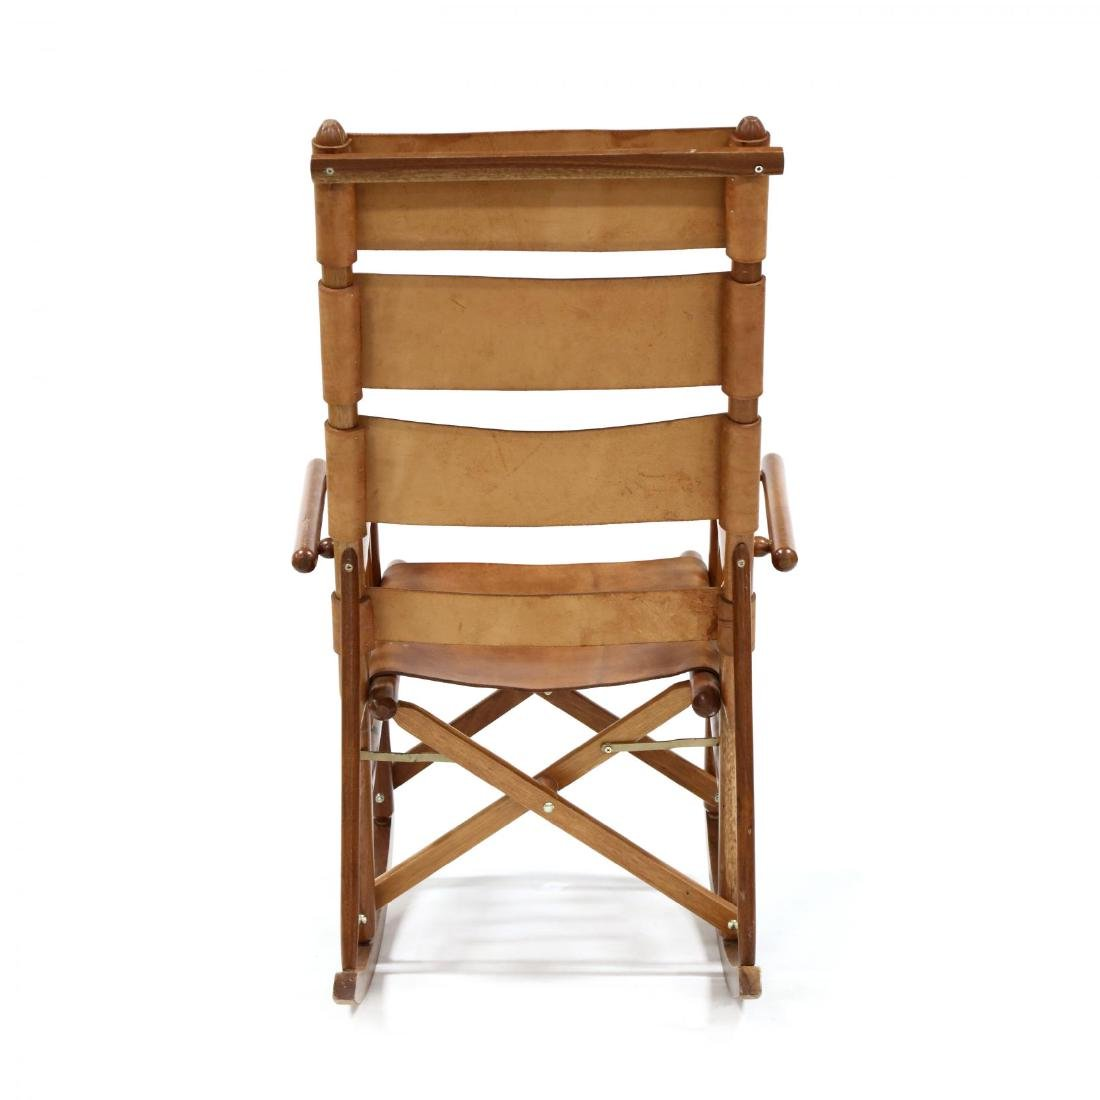 Pair of Modern Teak and Leather Campaign Rocking Chairs - 4